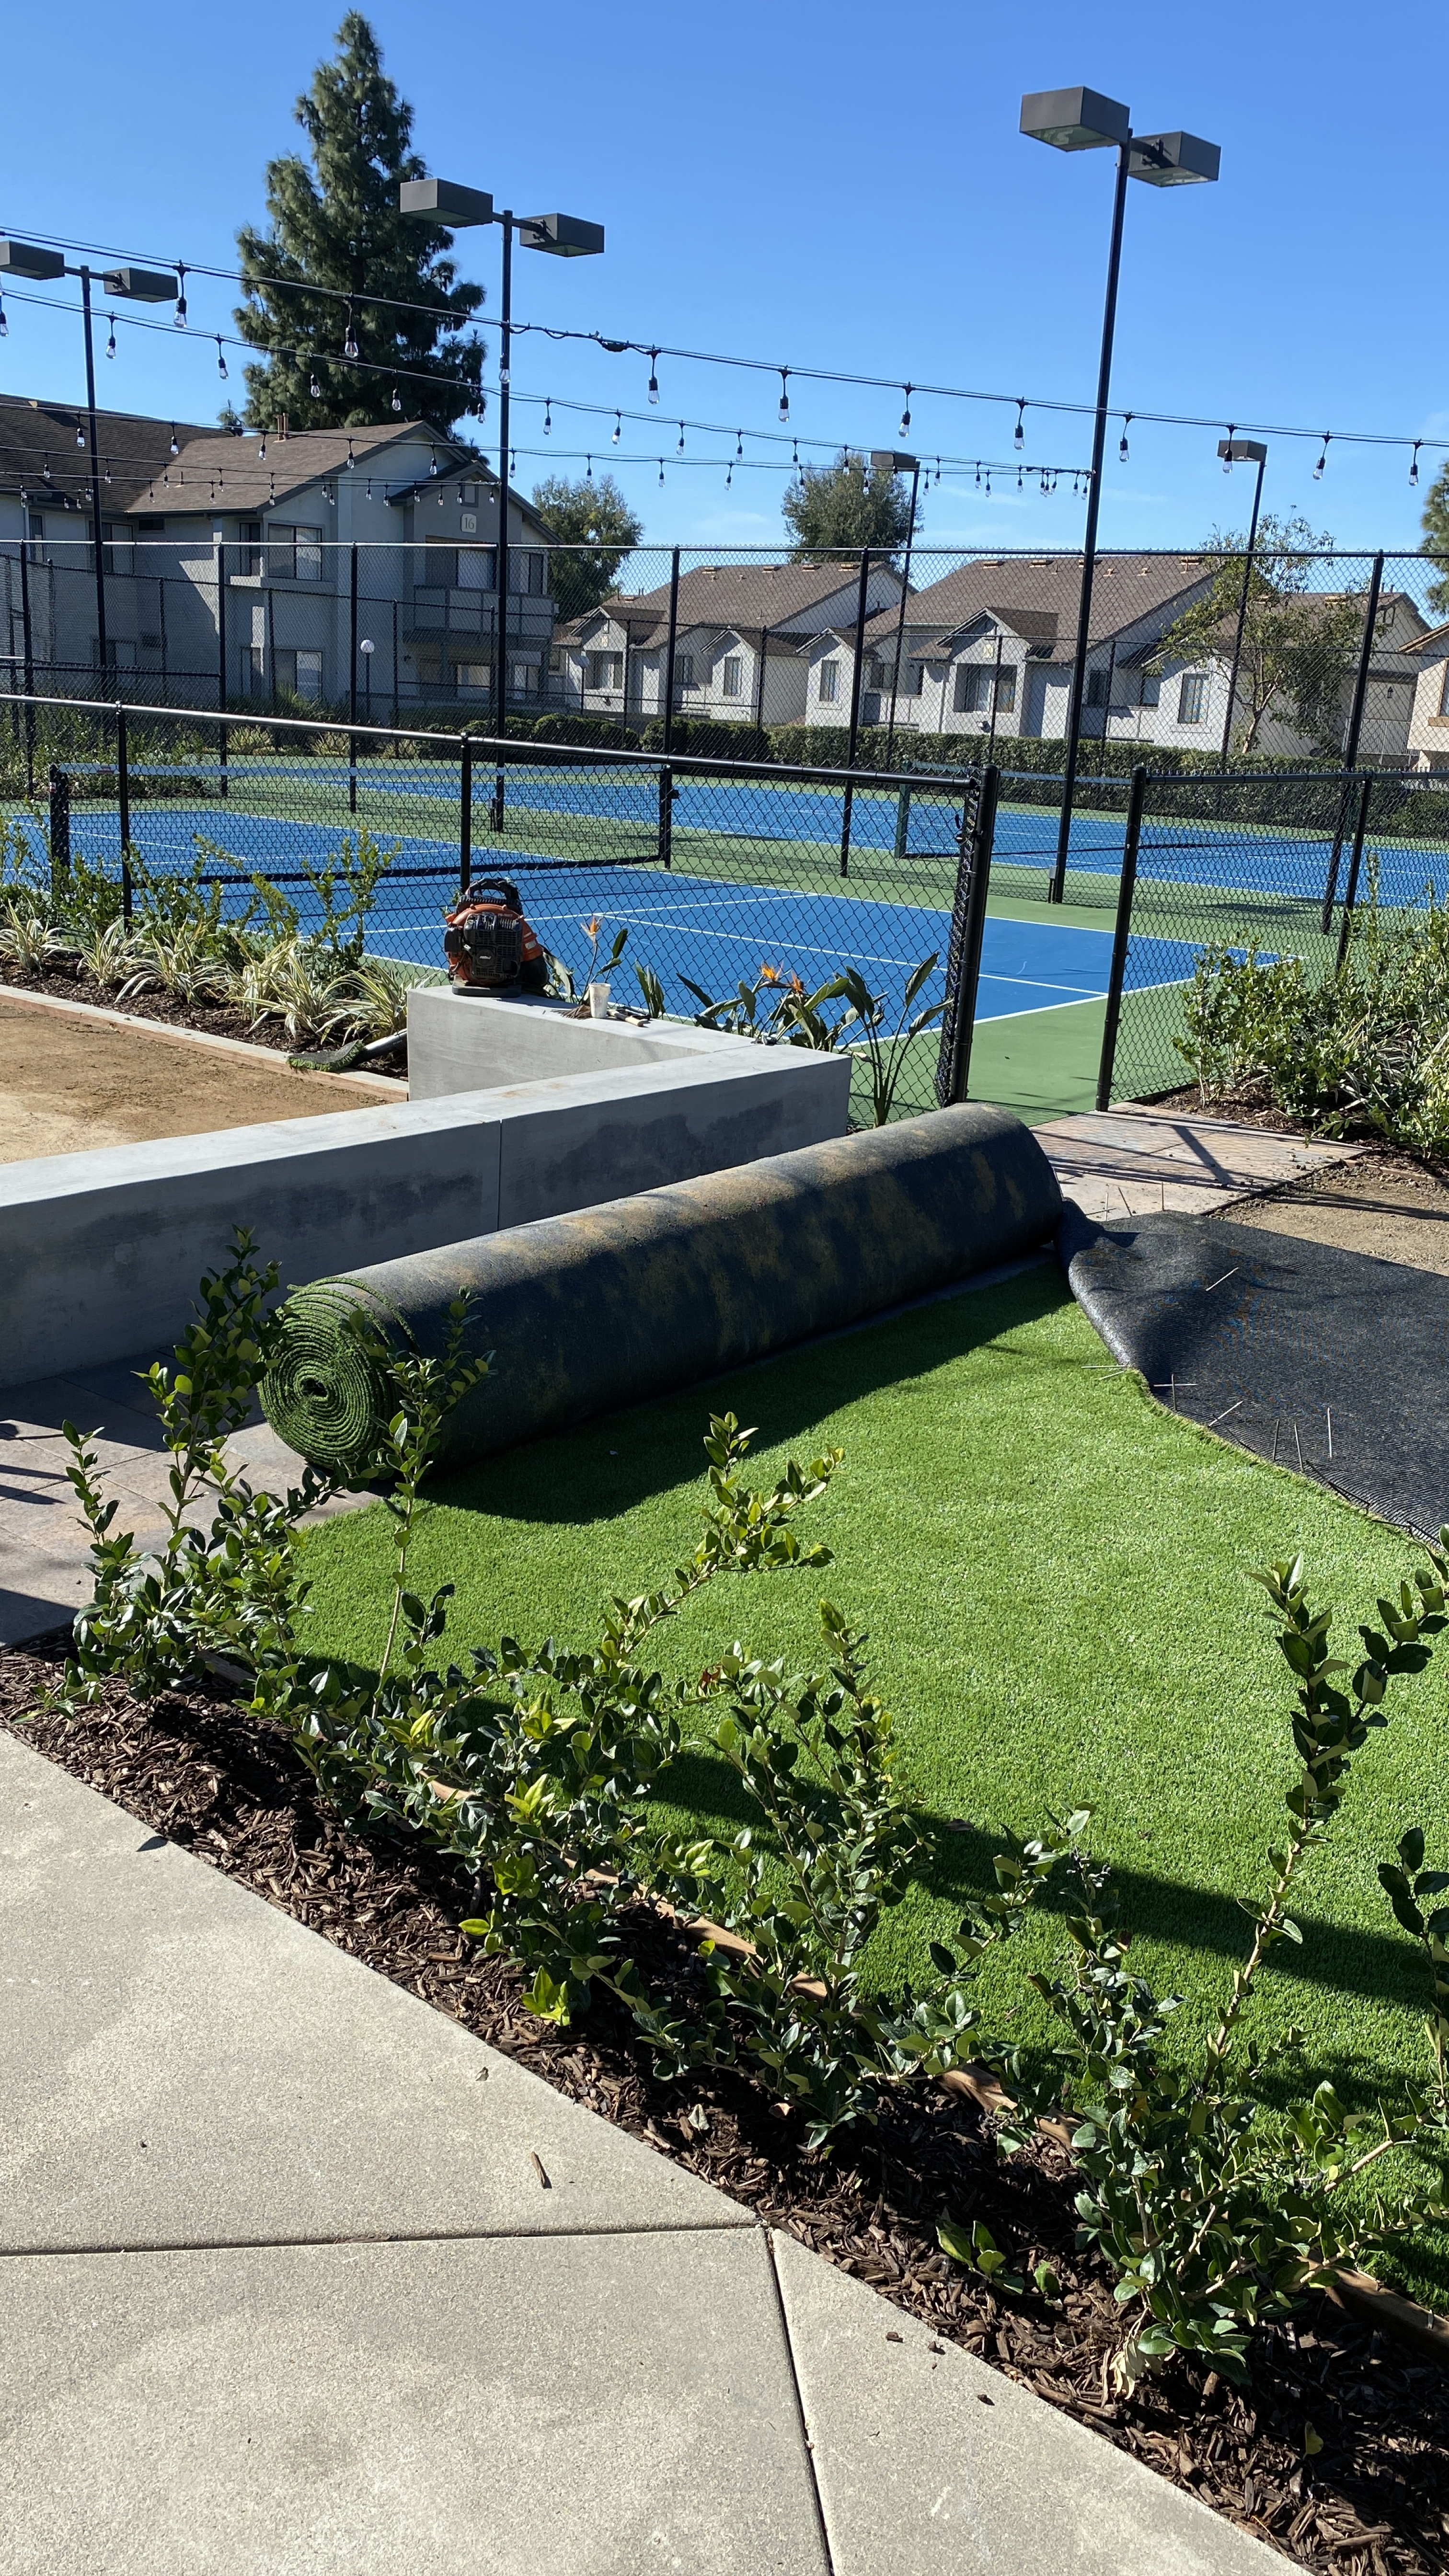 Premium M Blade-80 real grass,most realistic artificial grass,realistic artificial grass,artificial grass,fake grass,synthetic grass,grass carpet,artificial grass rug